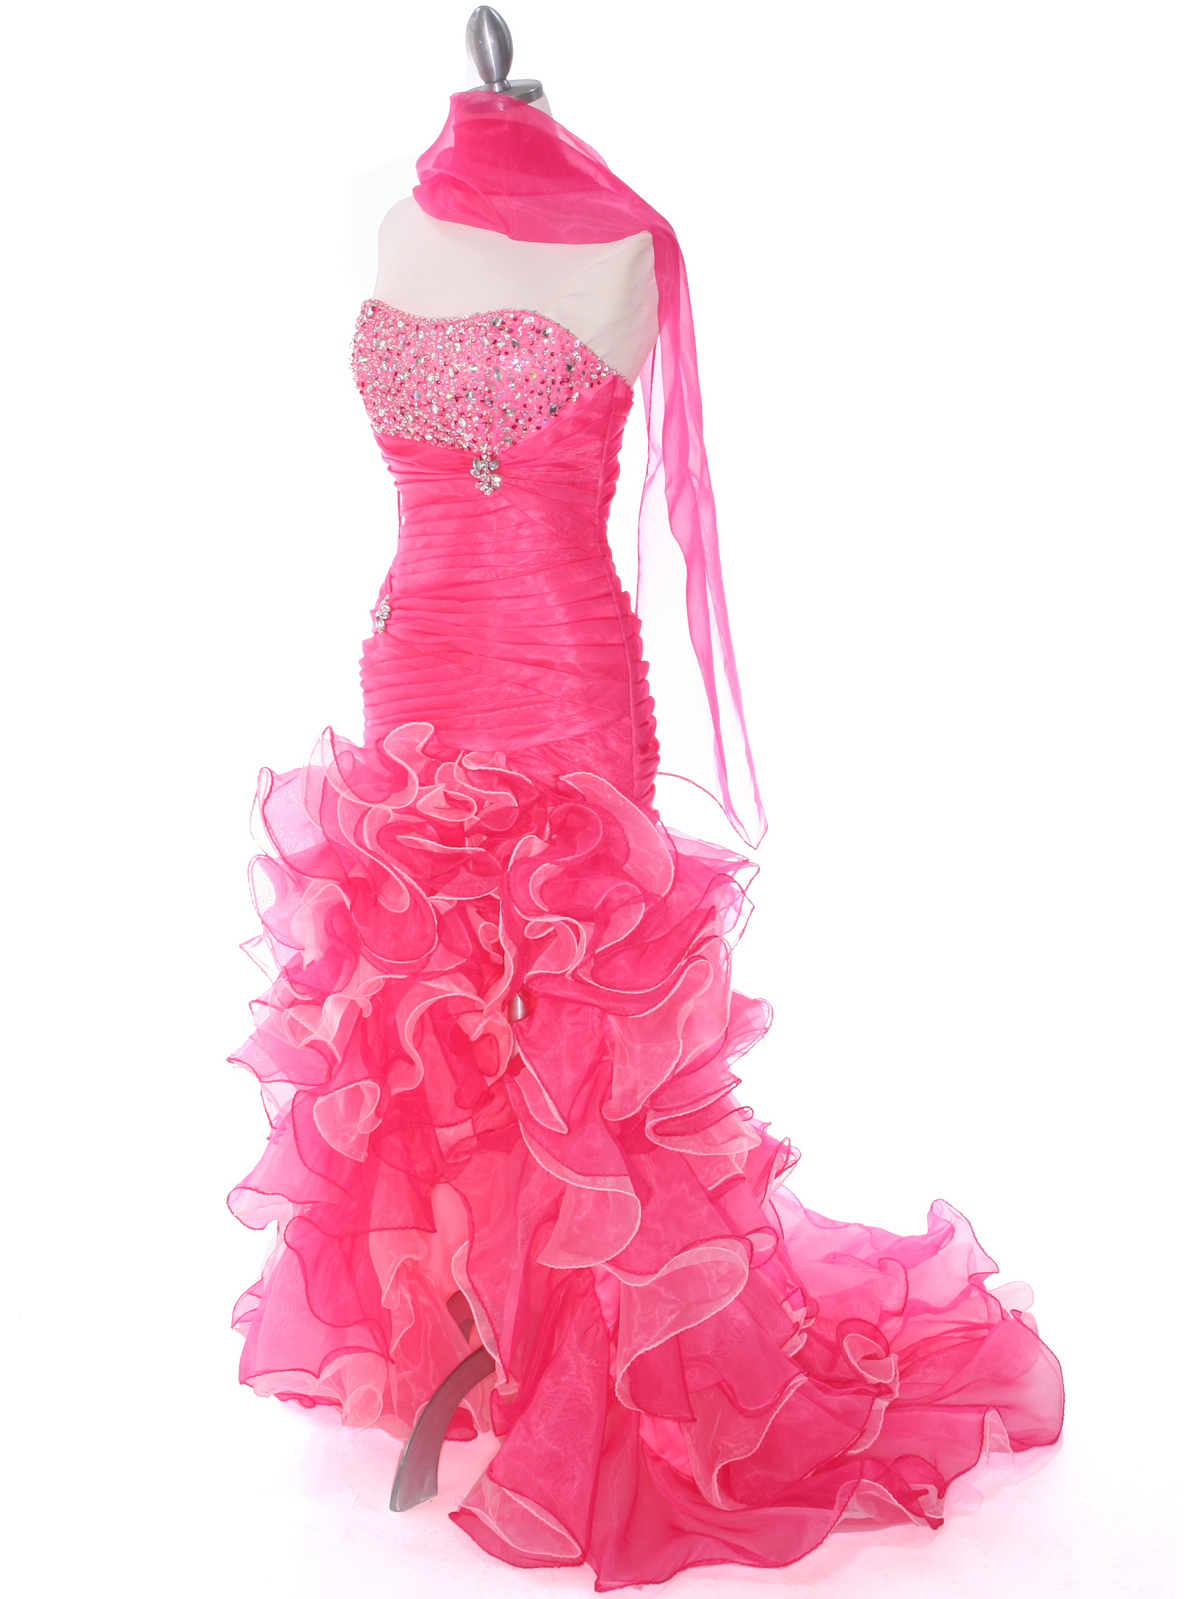 Hot Pink Prom Dress | Sung Boutique L.A.